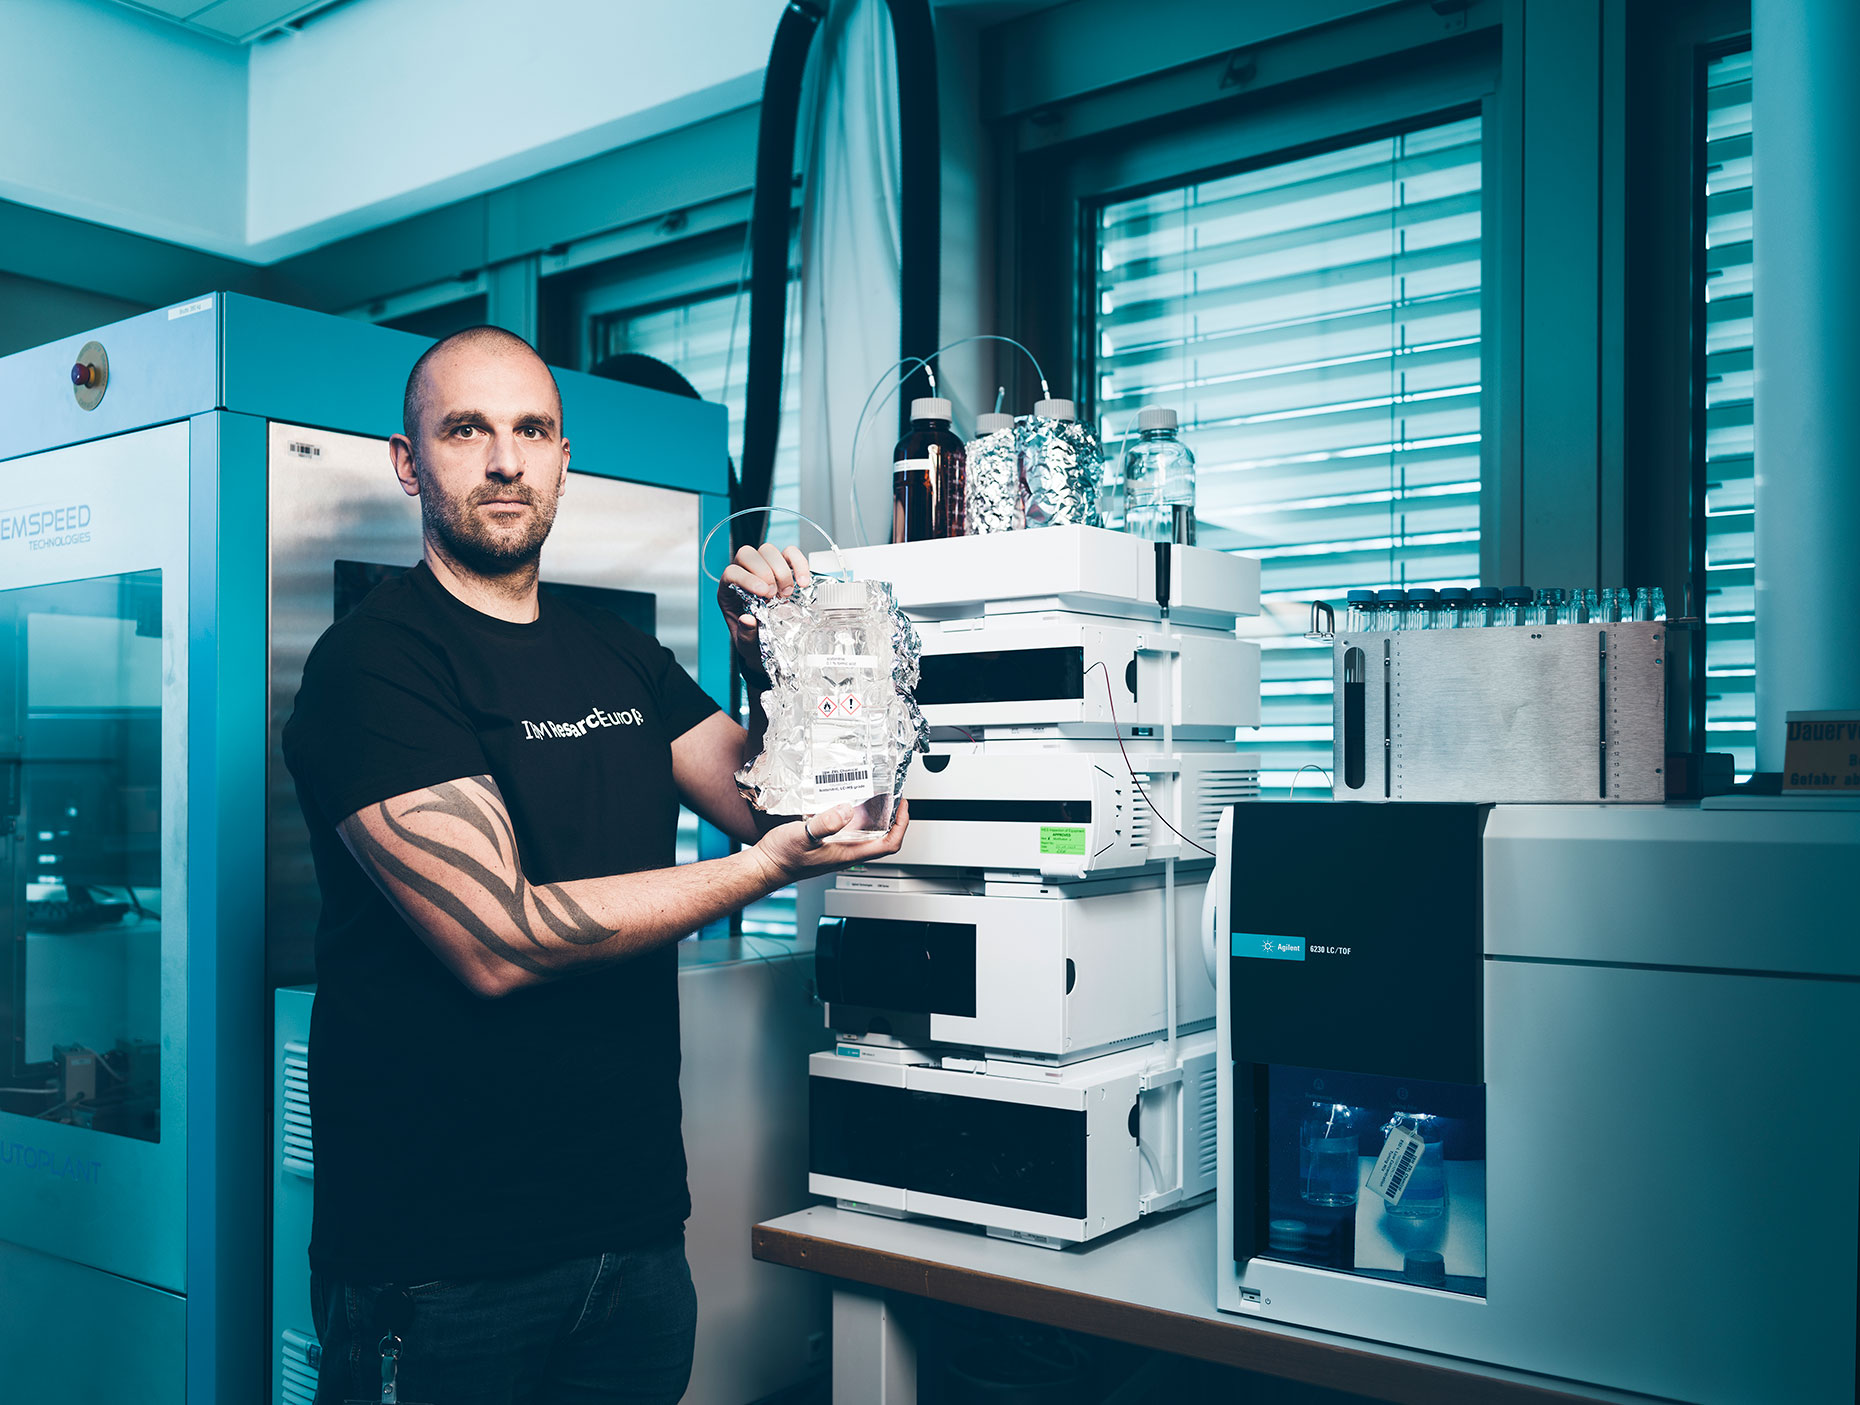 Teodoro Laino, Technical leader for Molecular Simulation, Principal RSM poses in a labratory at IBM Research Laboratory in Rueschlikon, for Bilanz